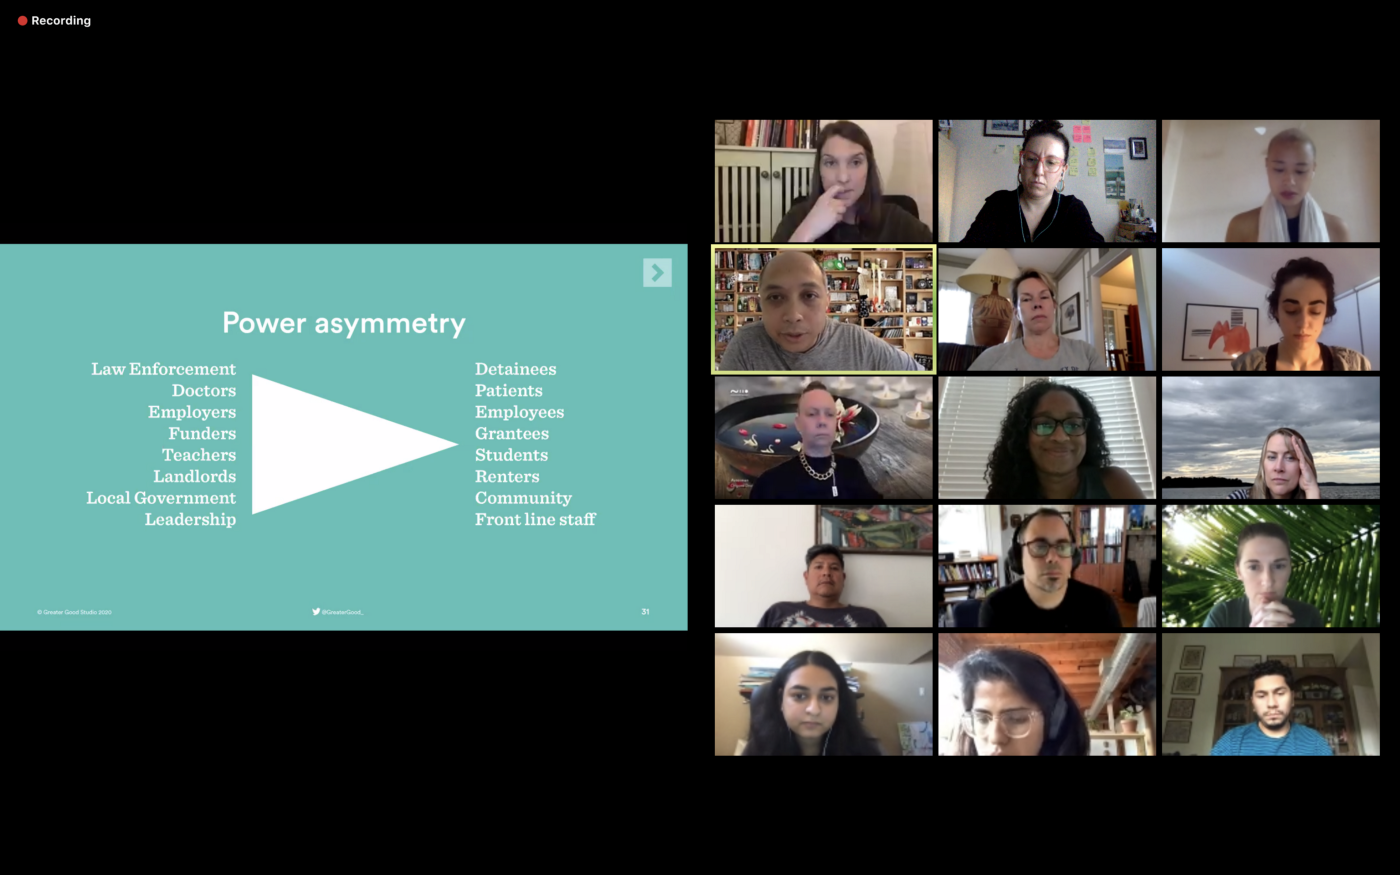 Screenshot of Zoom presentation with a slide that lists out power asymmetries alongside a gallery view of participants